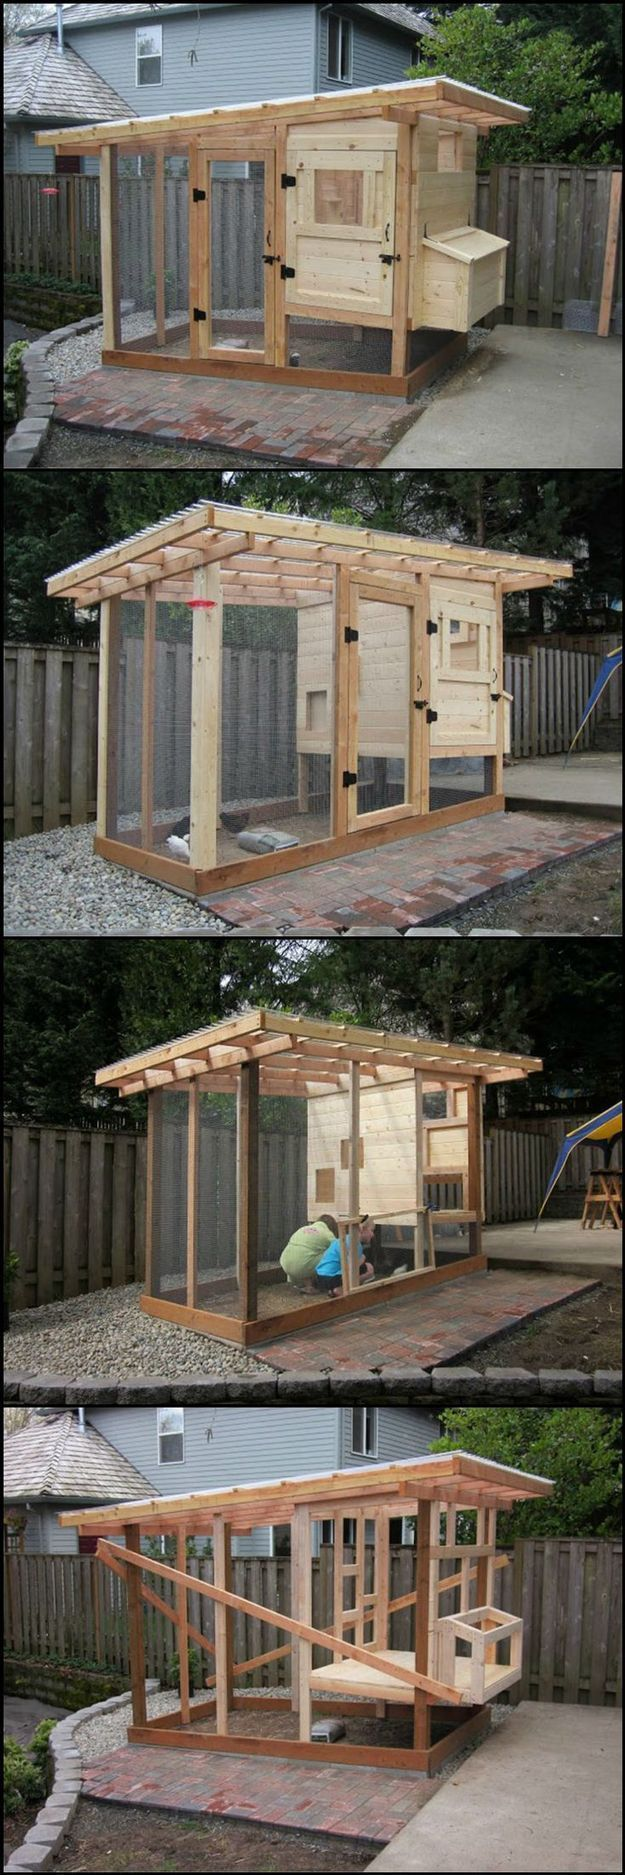 best 25 diy chicken coop ideas on pinterest chicken coops chicken houses and backyard chickens - Chicken Coop Ideas Design